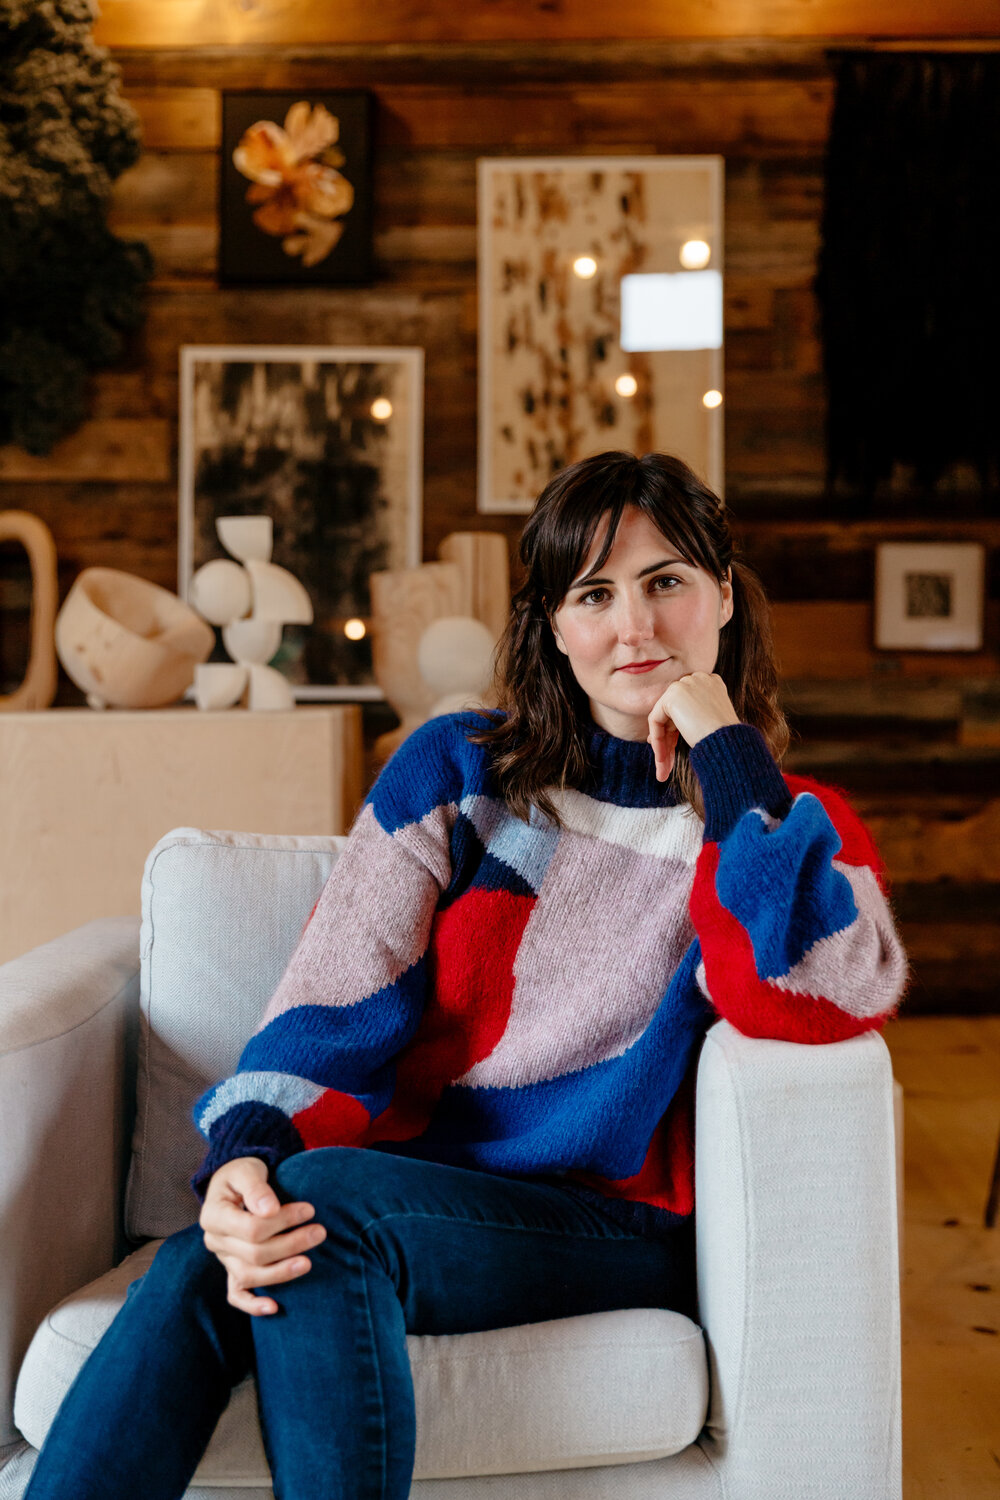 """Meet    Dana McClure   : Mama of two and co-founder of  Ra  venwood  : a converted Upstate barn-space…where farming, food and design meet in the most perfectly, serene way!  SEE FULL FEATURE    Dana wears Fall 19      CAROLINE Sweater     : a design collaboration with Swiss-artist      Caroline Denervaud     Photo by:  @delainedacko      """"This extended time at home with my family is both rewarding and let's just say... intense. There's no escape from the kids and everyone's overflowing emotions! Some days are pure magic though – being more fully present for the moments that would have previously been overlooked due to the constant hustle of our lives. Underlining each day, along with fear of the unknown, is a deep gratitude for our health and for each other. Reflecting on the idea of ' mothering', I feel a deep desire to better mother myself and help nurture and give back to the world around me.""""    Dana McClure - Co-founder of     @ravenwoodny      + artist: Dana McClure"""